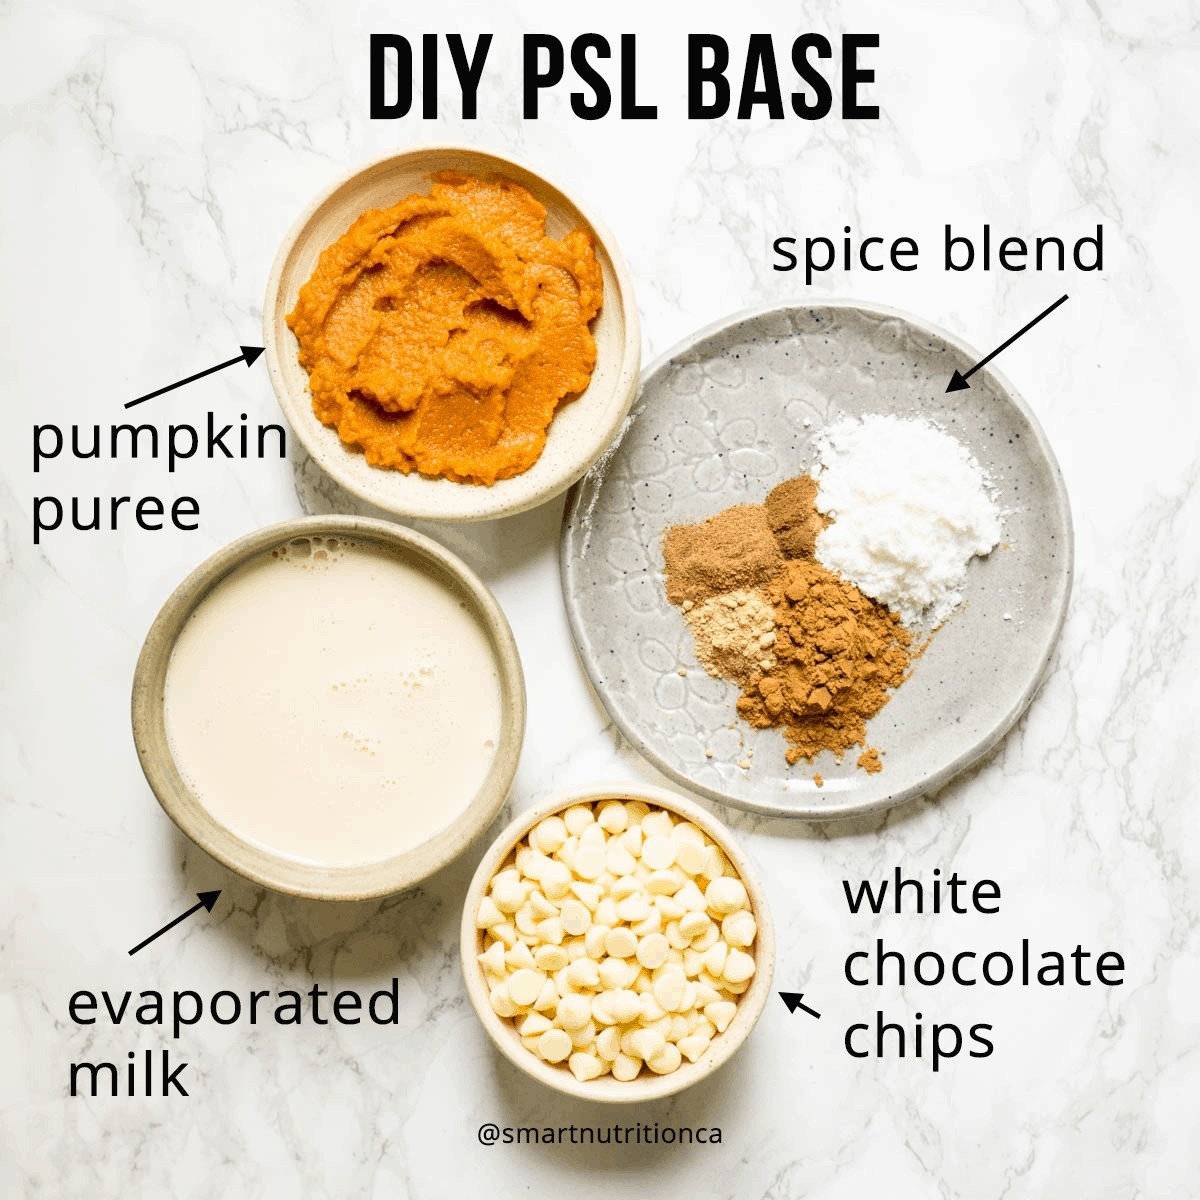 A flat lay image of pumpkins spice sauce ingredients including pumpkin puree, spice blend, white chocolate chips, and evaporated milk